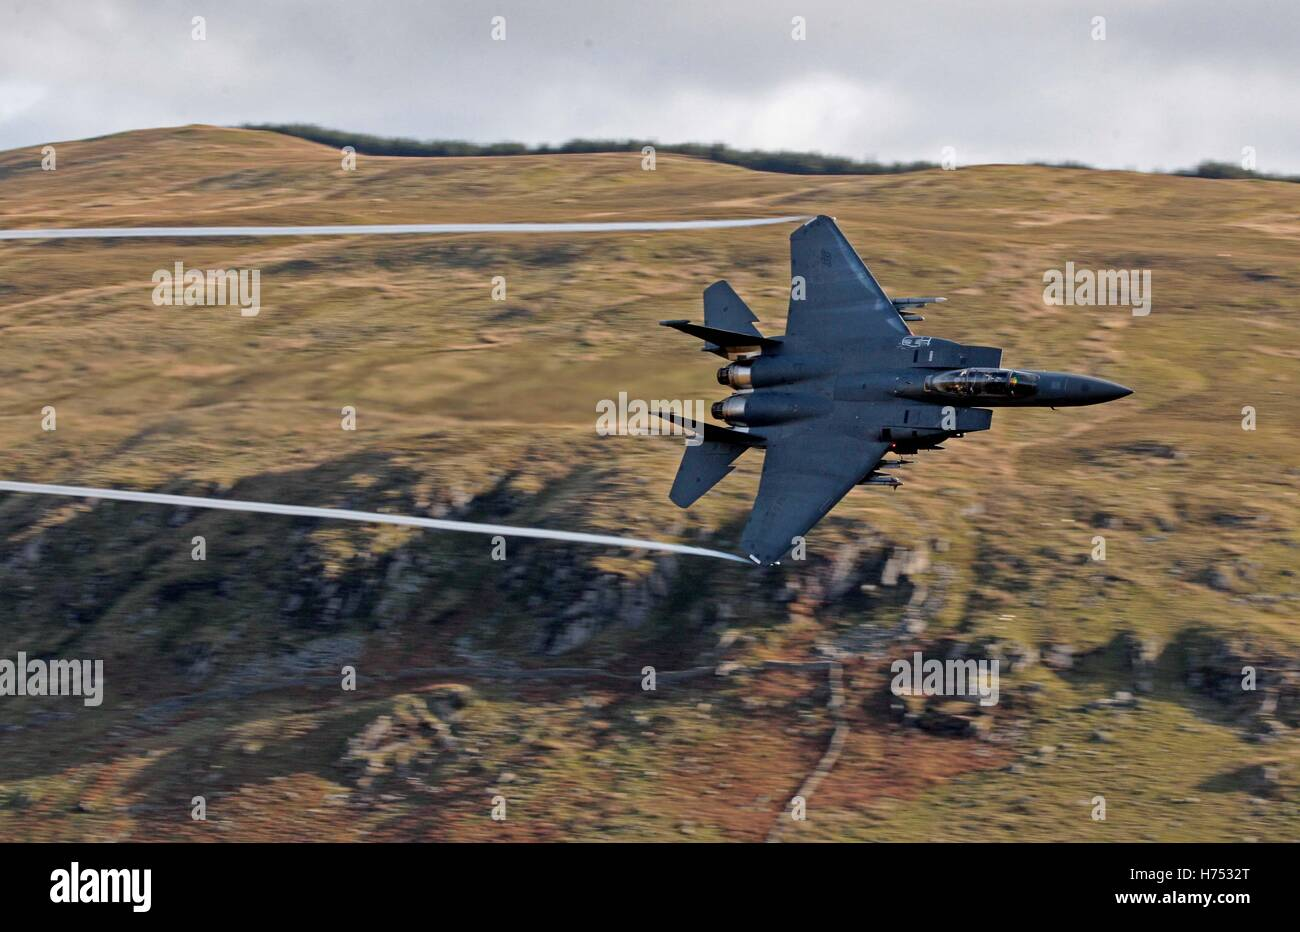 An F-15 jet is seen from Cad West, as it flies low level through the